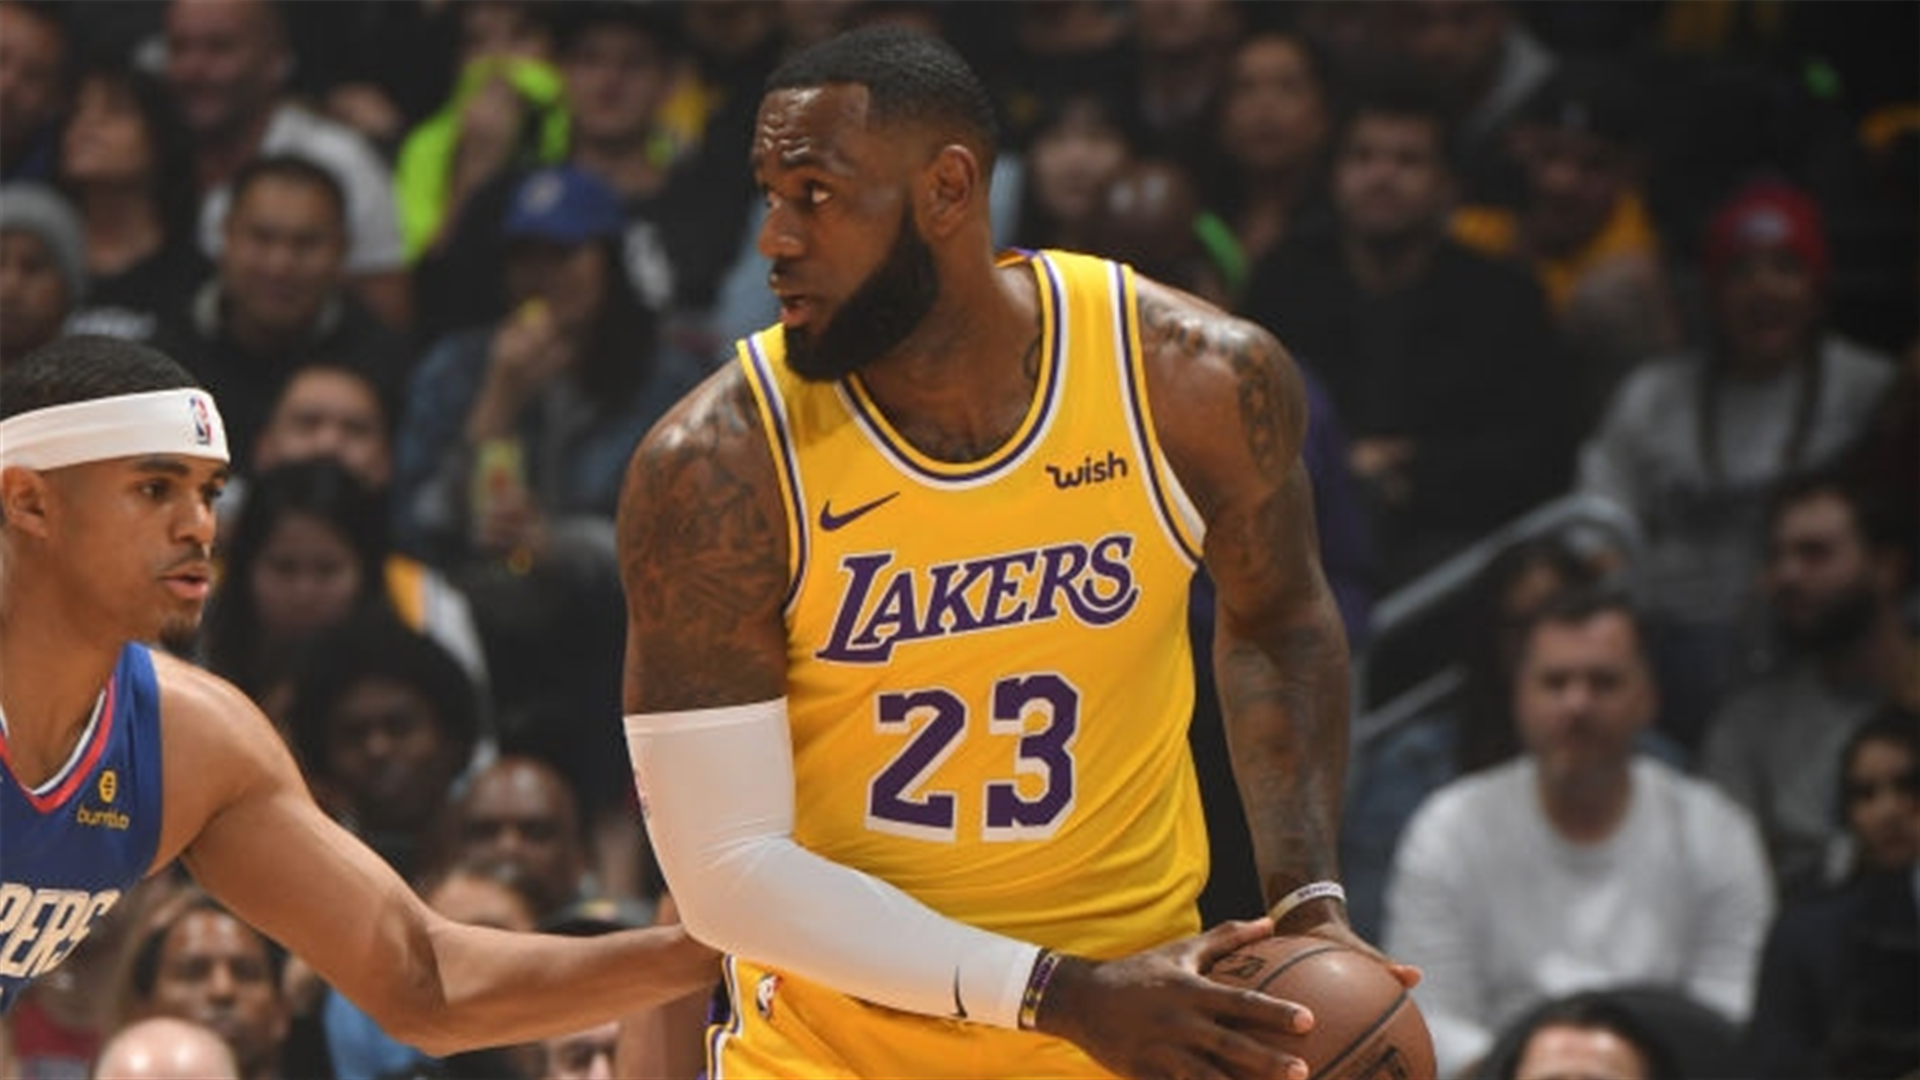 Lakers' LeBron James ruled out for today's game against ...